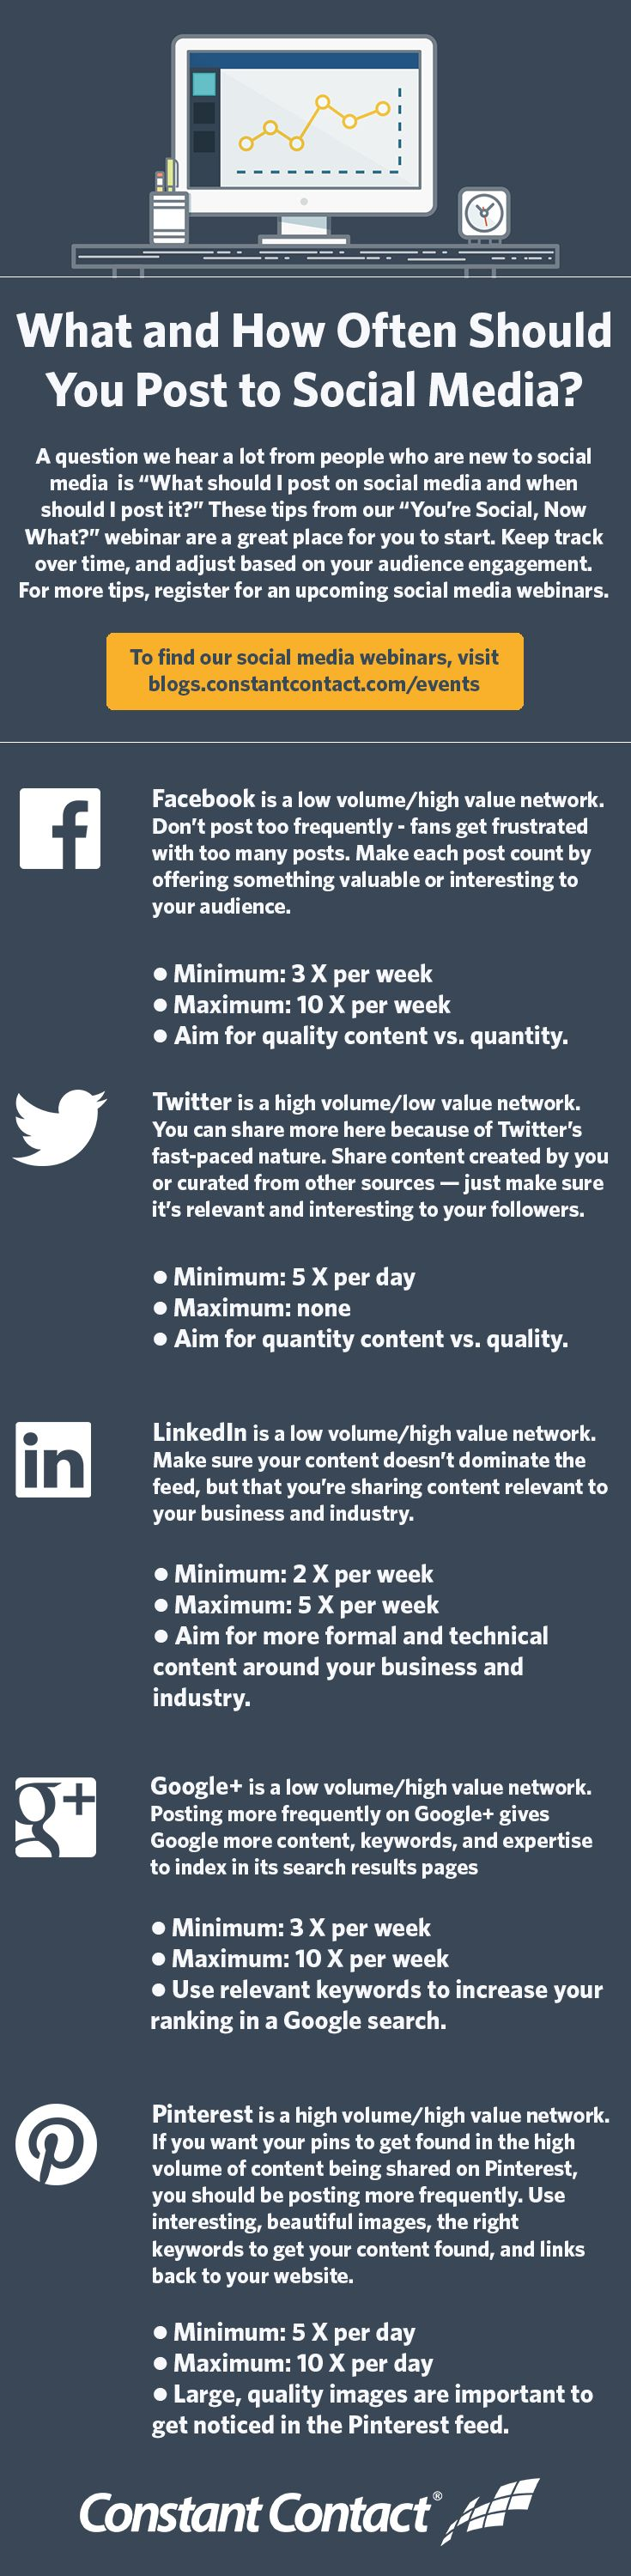 What and How Often Should You Post on Social Media? [Cheat Sheet]